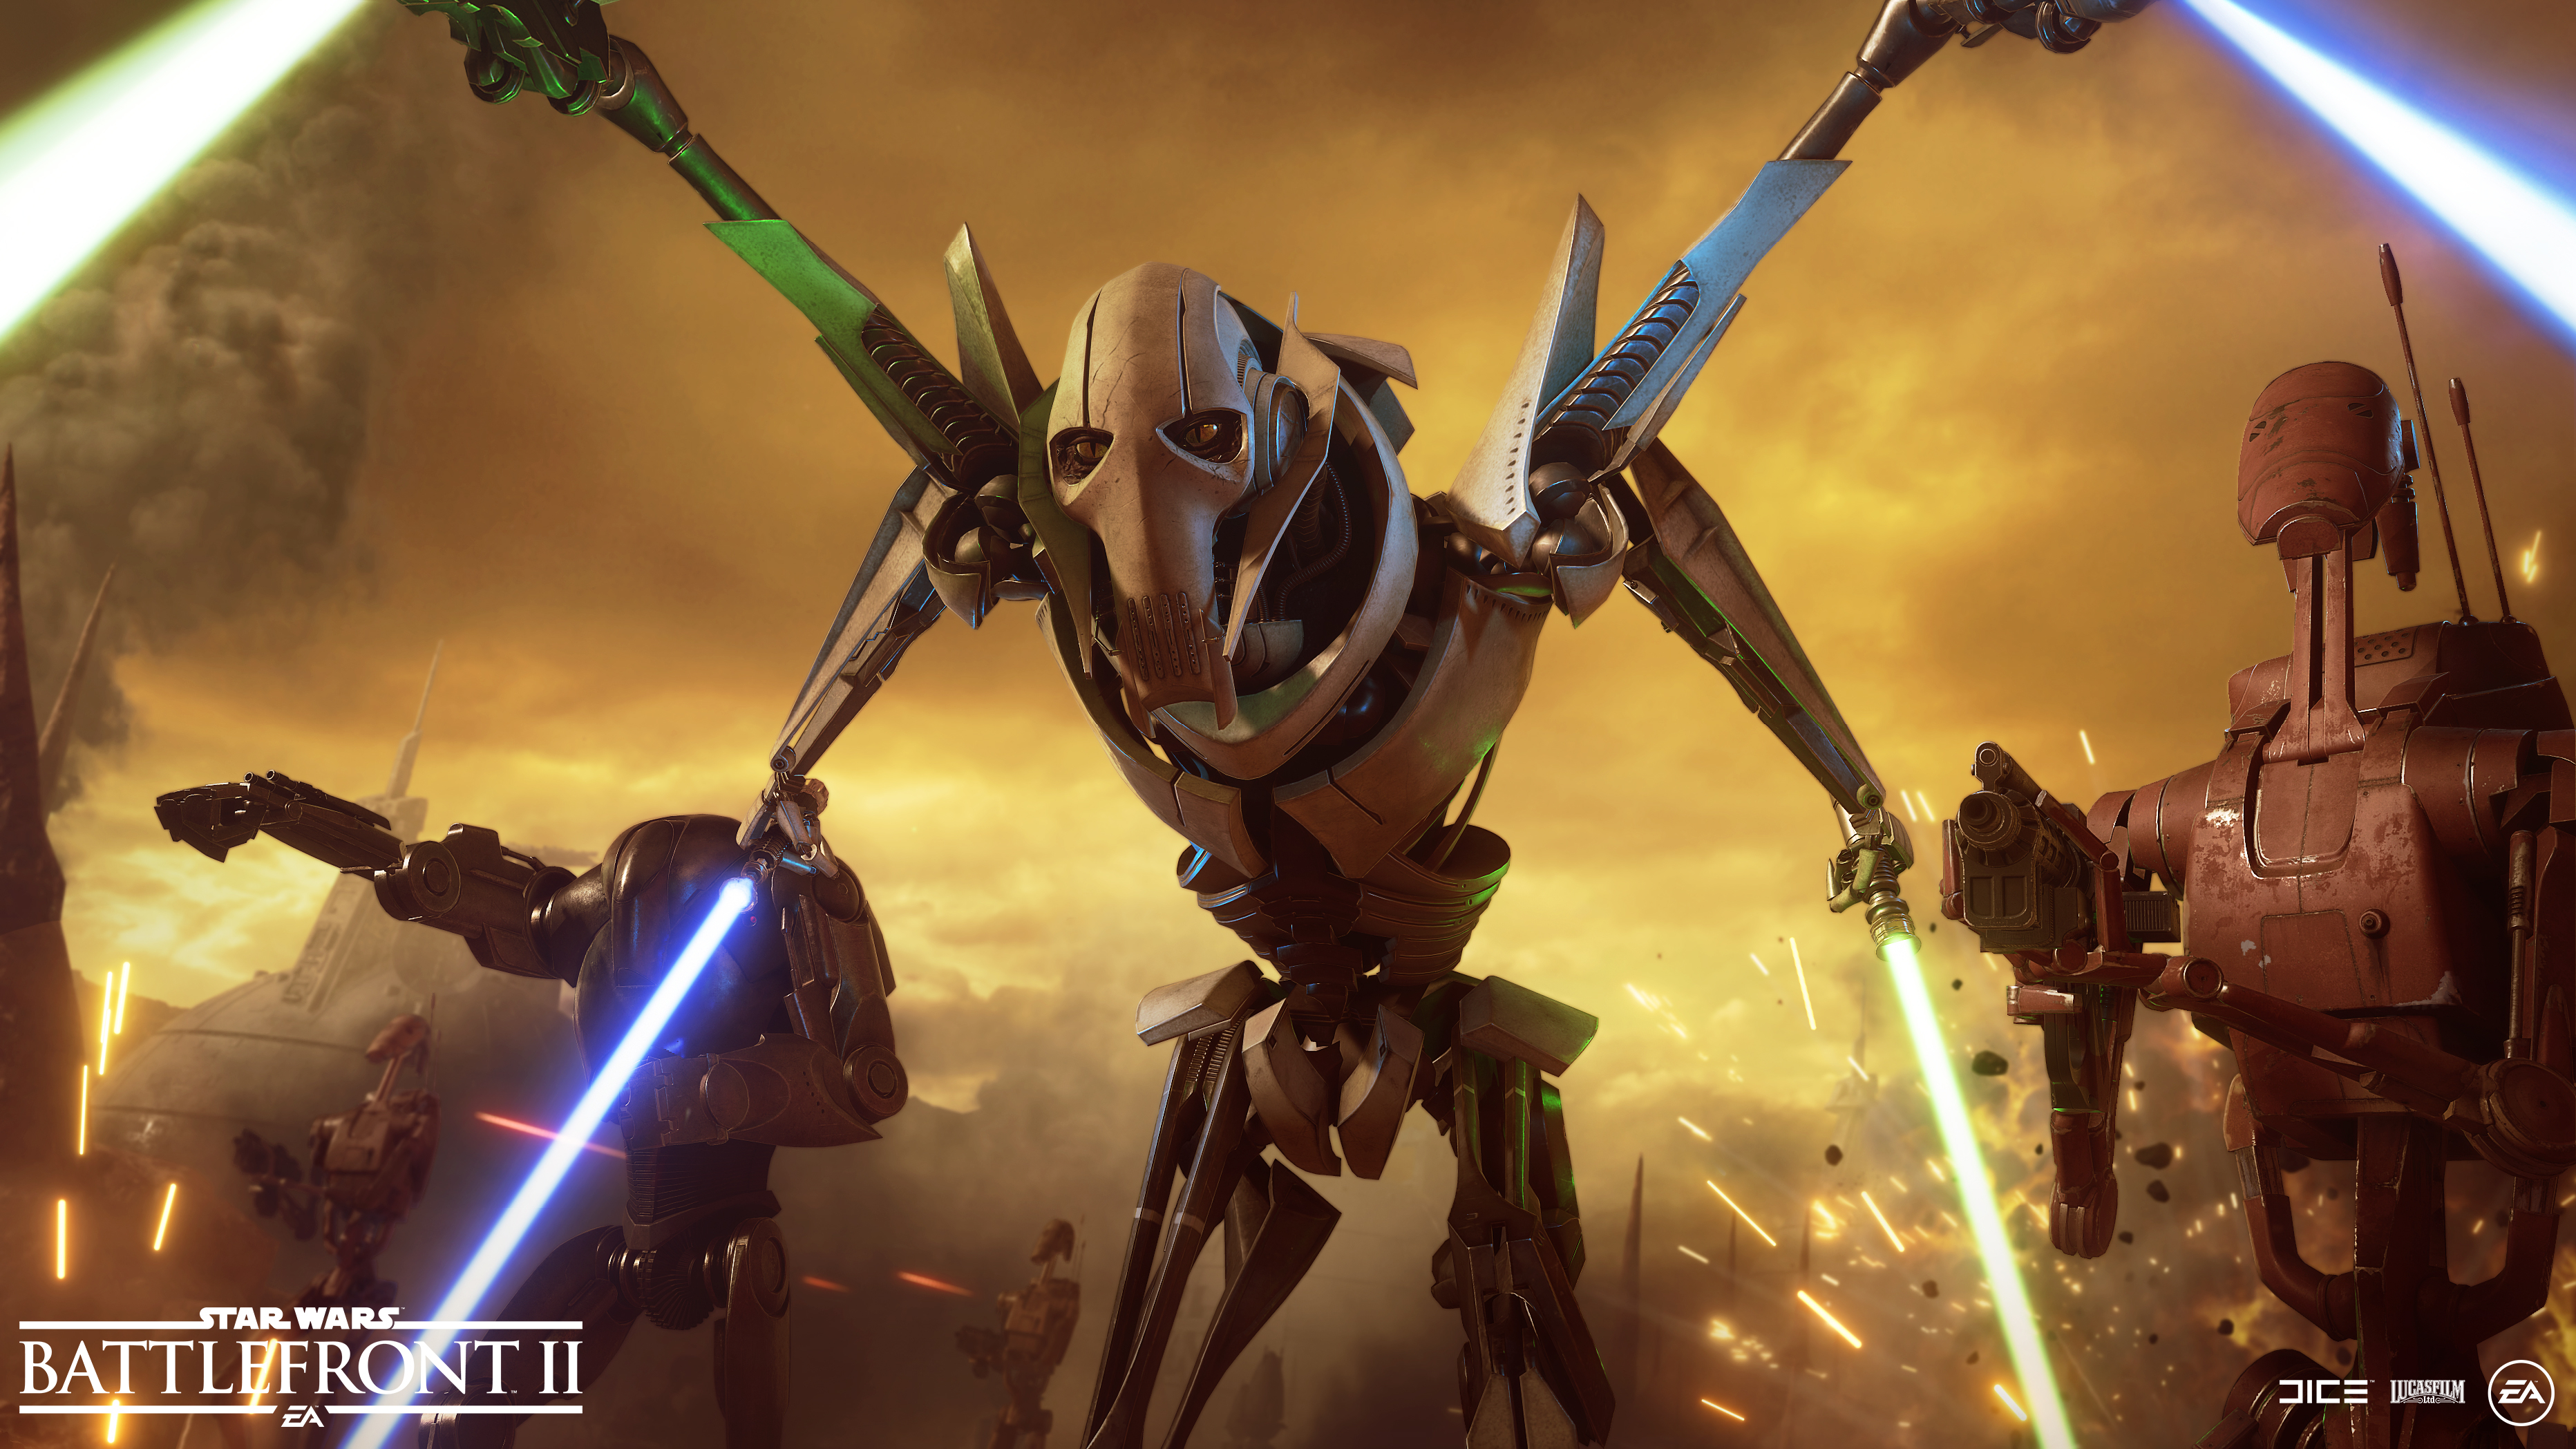 General Grievous Arrives In Star Wars Battlefront Ii Next Week Abilities Star Cards Appearances And Voice Lines Detailed